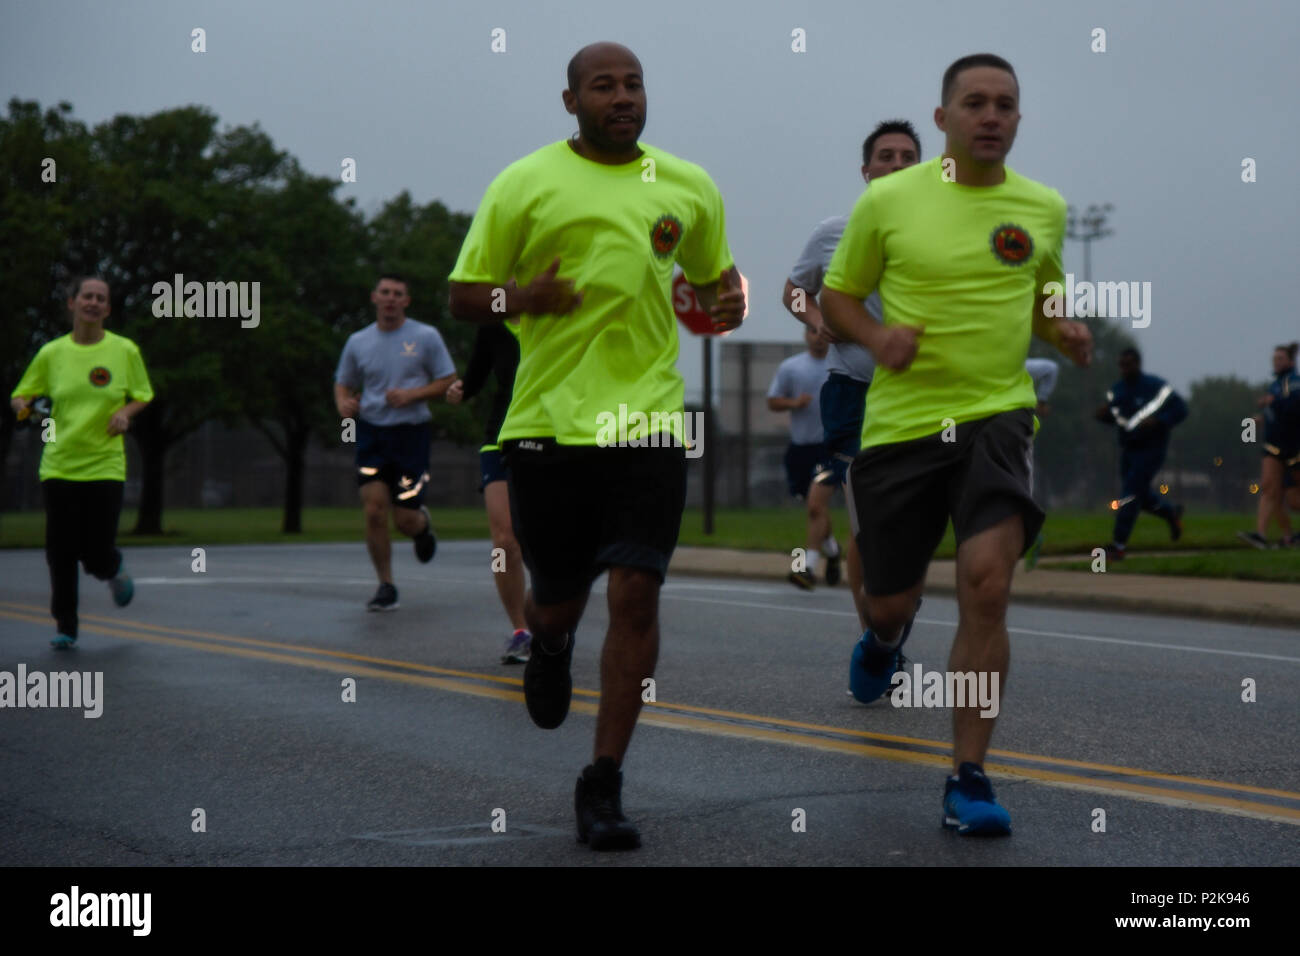 The 11th Security Forces Group and 11th Civil Engineering Squadron race to the finish line in the National Preparedness Month 5K on Joint Base Andrews, Md., Sept. 30, 2016. NPM is a time to inform installation members on techniques to use during a disaster. More than 50 runners participated in the 5K. (U.S. Air Force photo by Airman 1st Class Valentina Lopez) - Stock Image